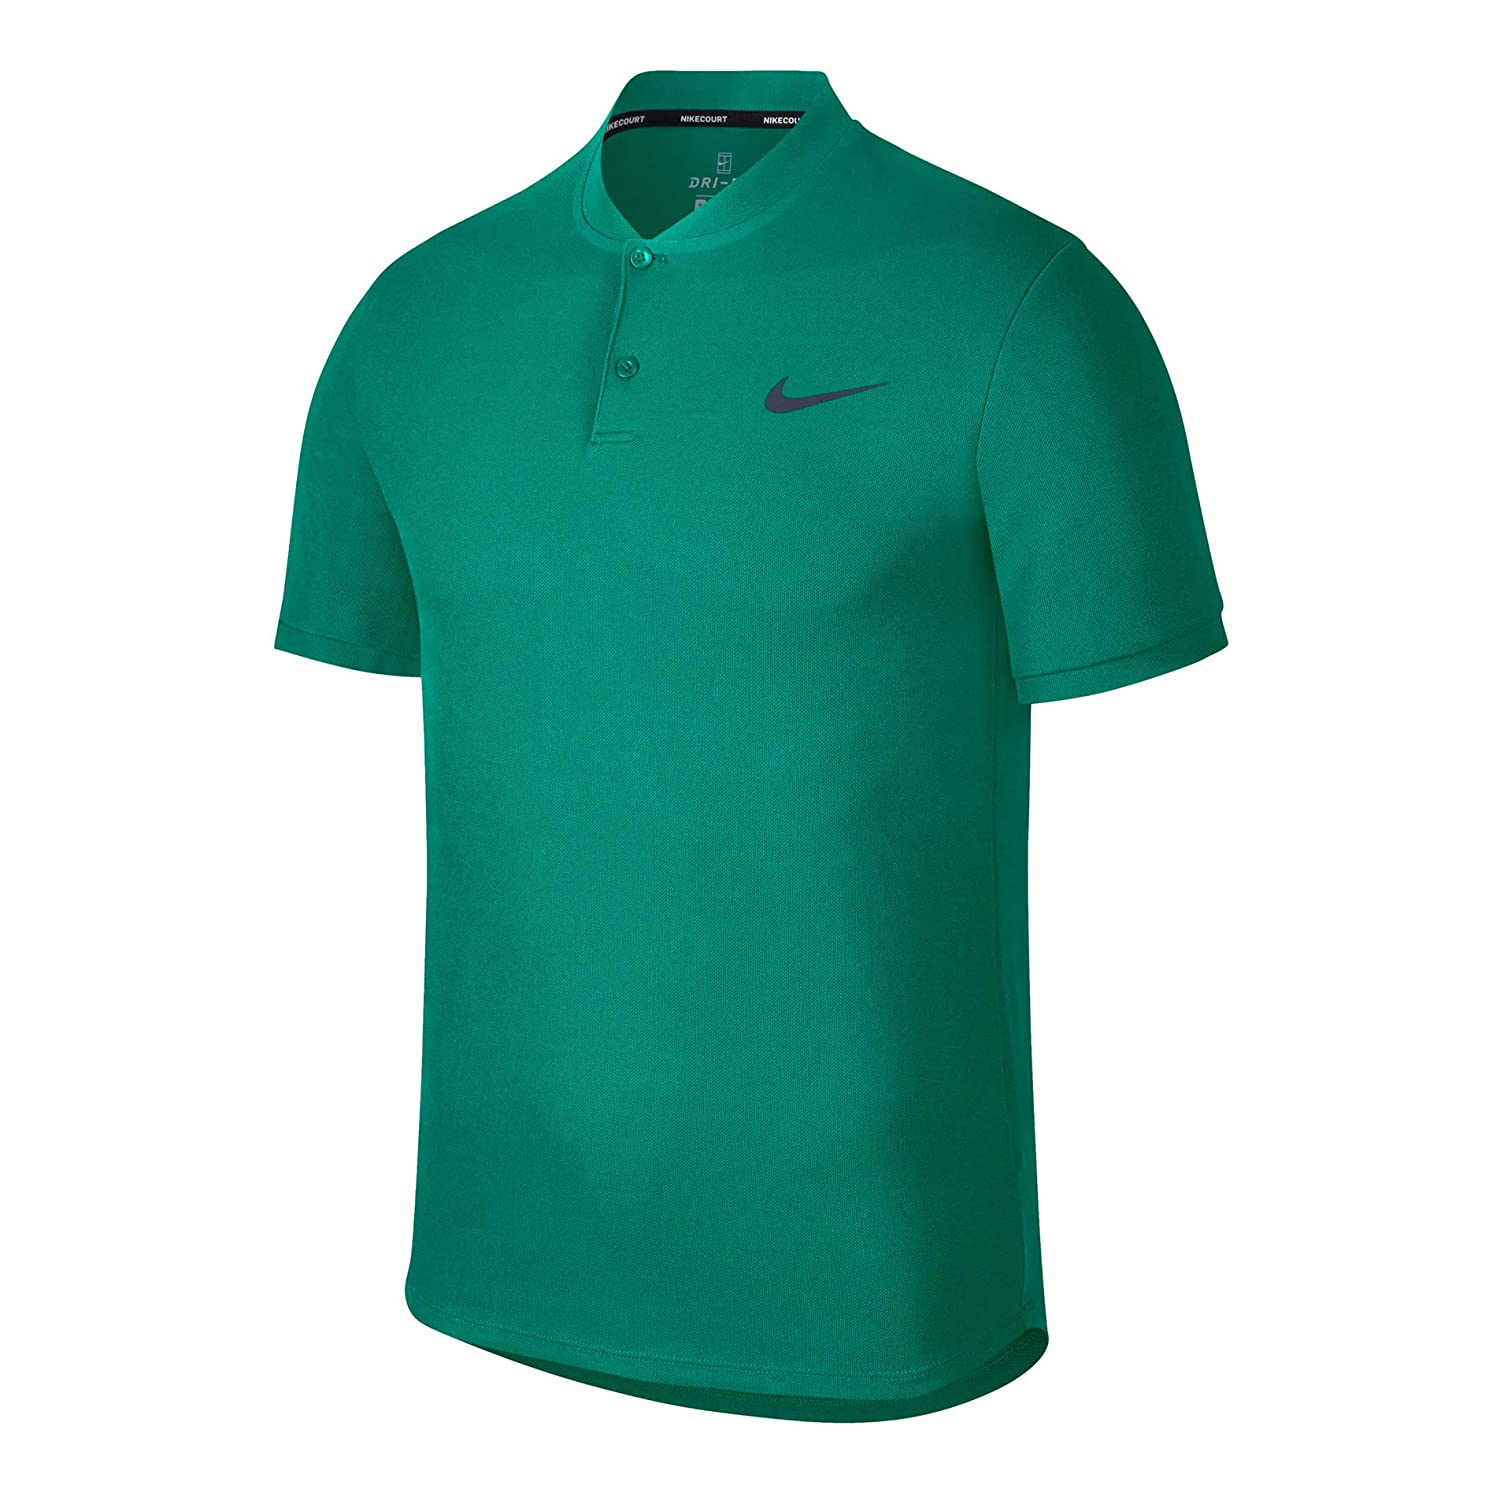 Nike Men s nikecourt Dry Advantage Tenis, Polo para Hombre ...